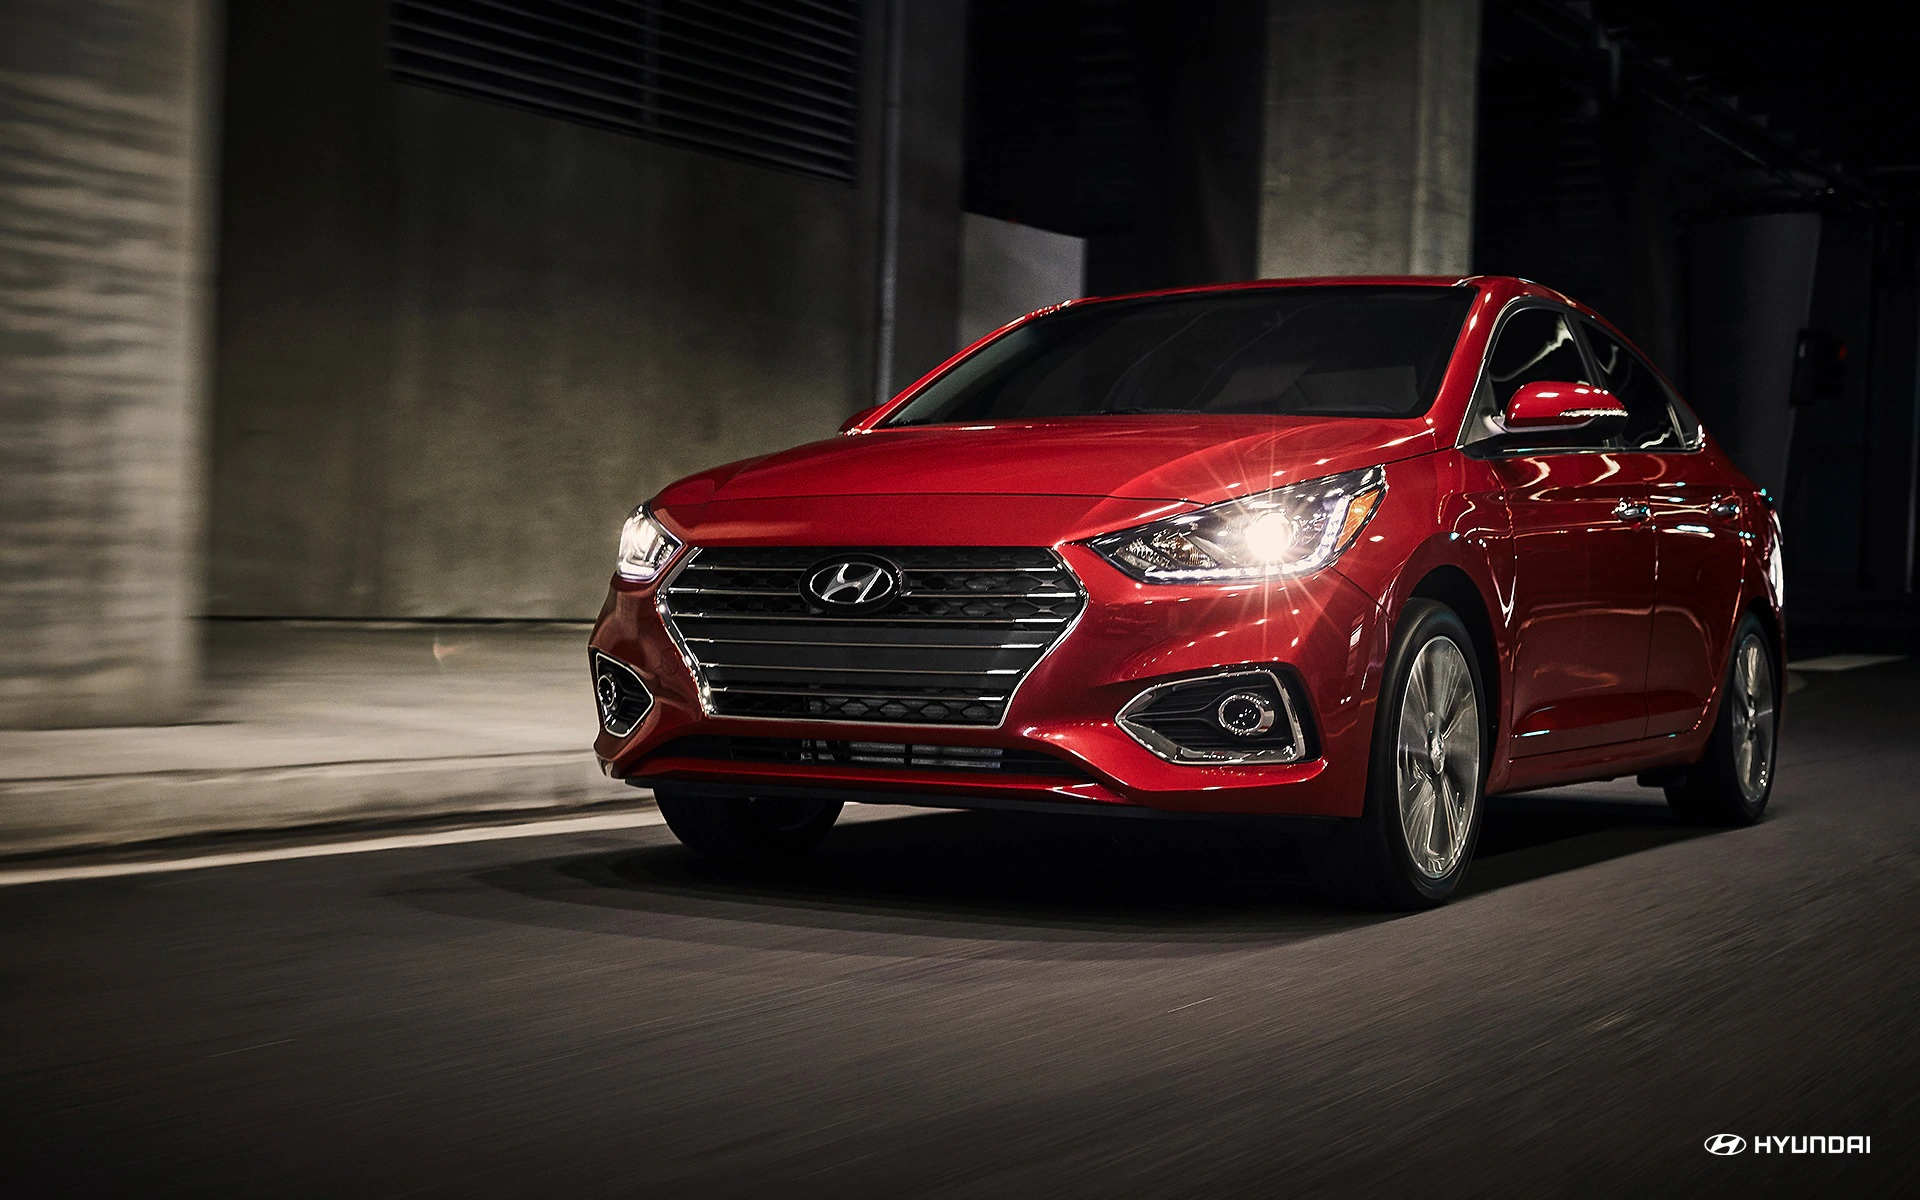 2019 Hyundai Accent leasing near Washington, DC